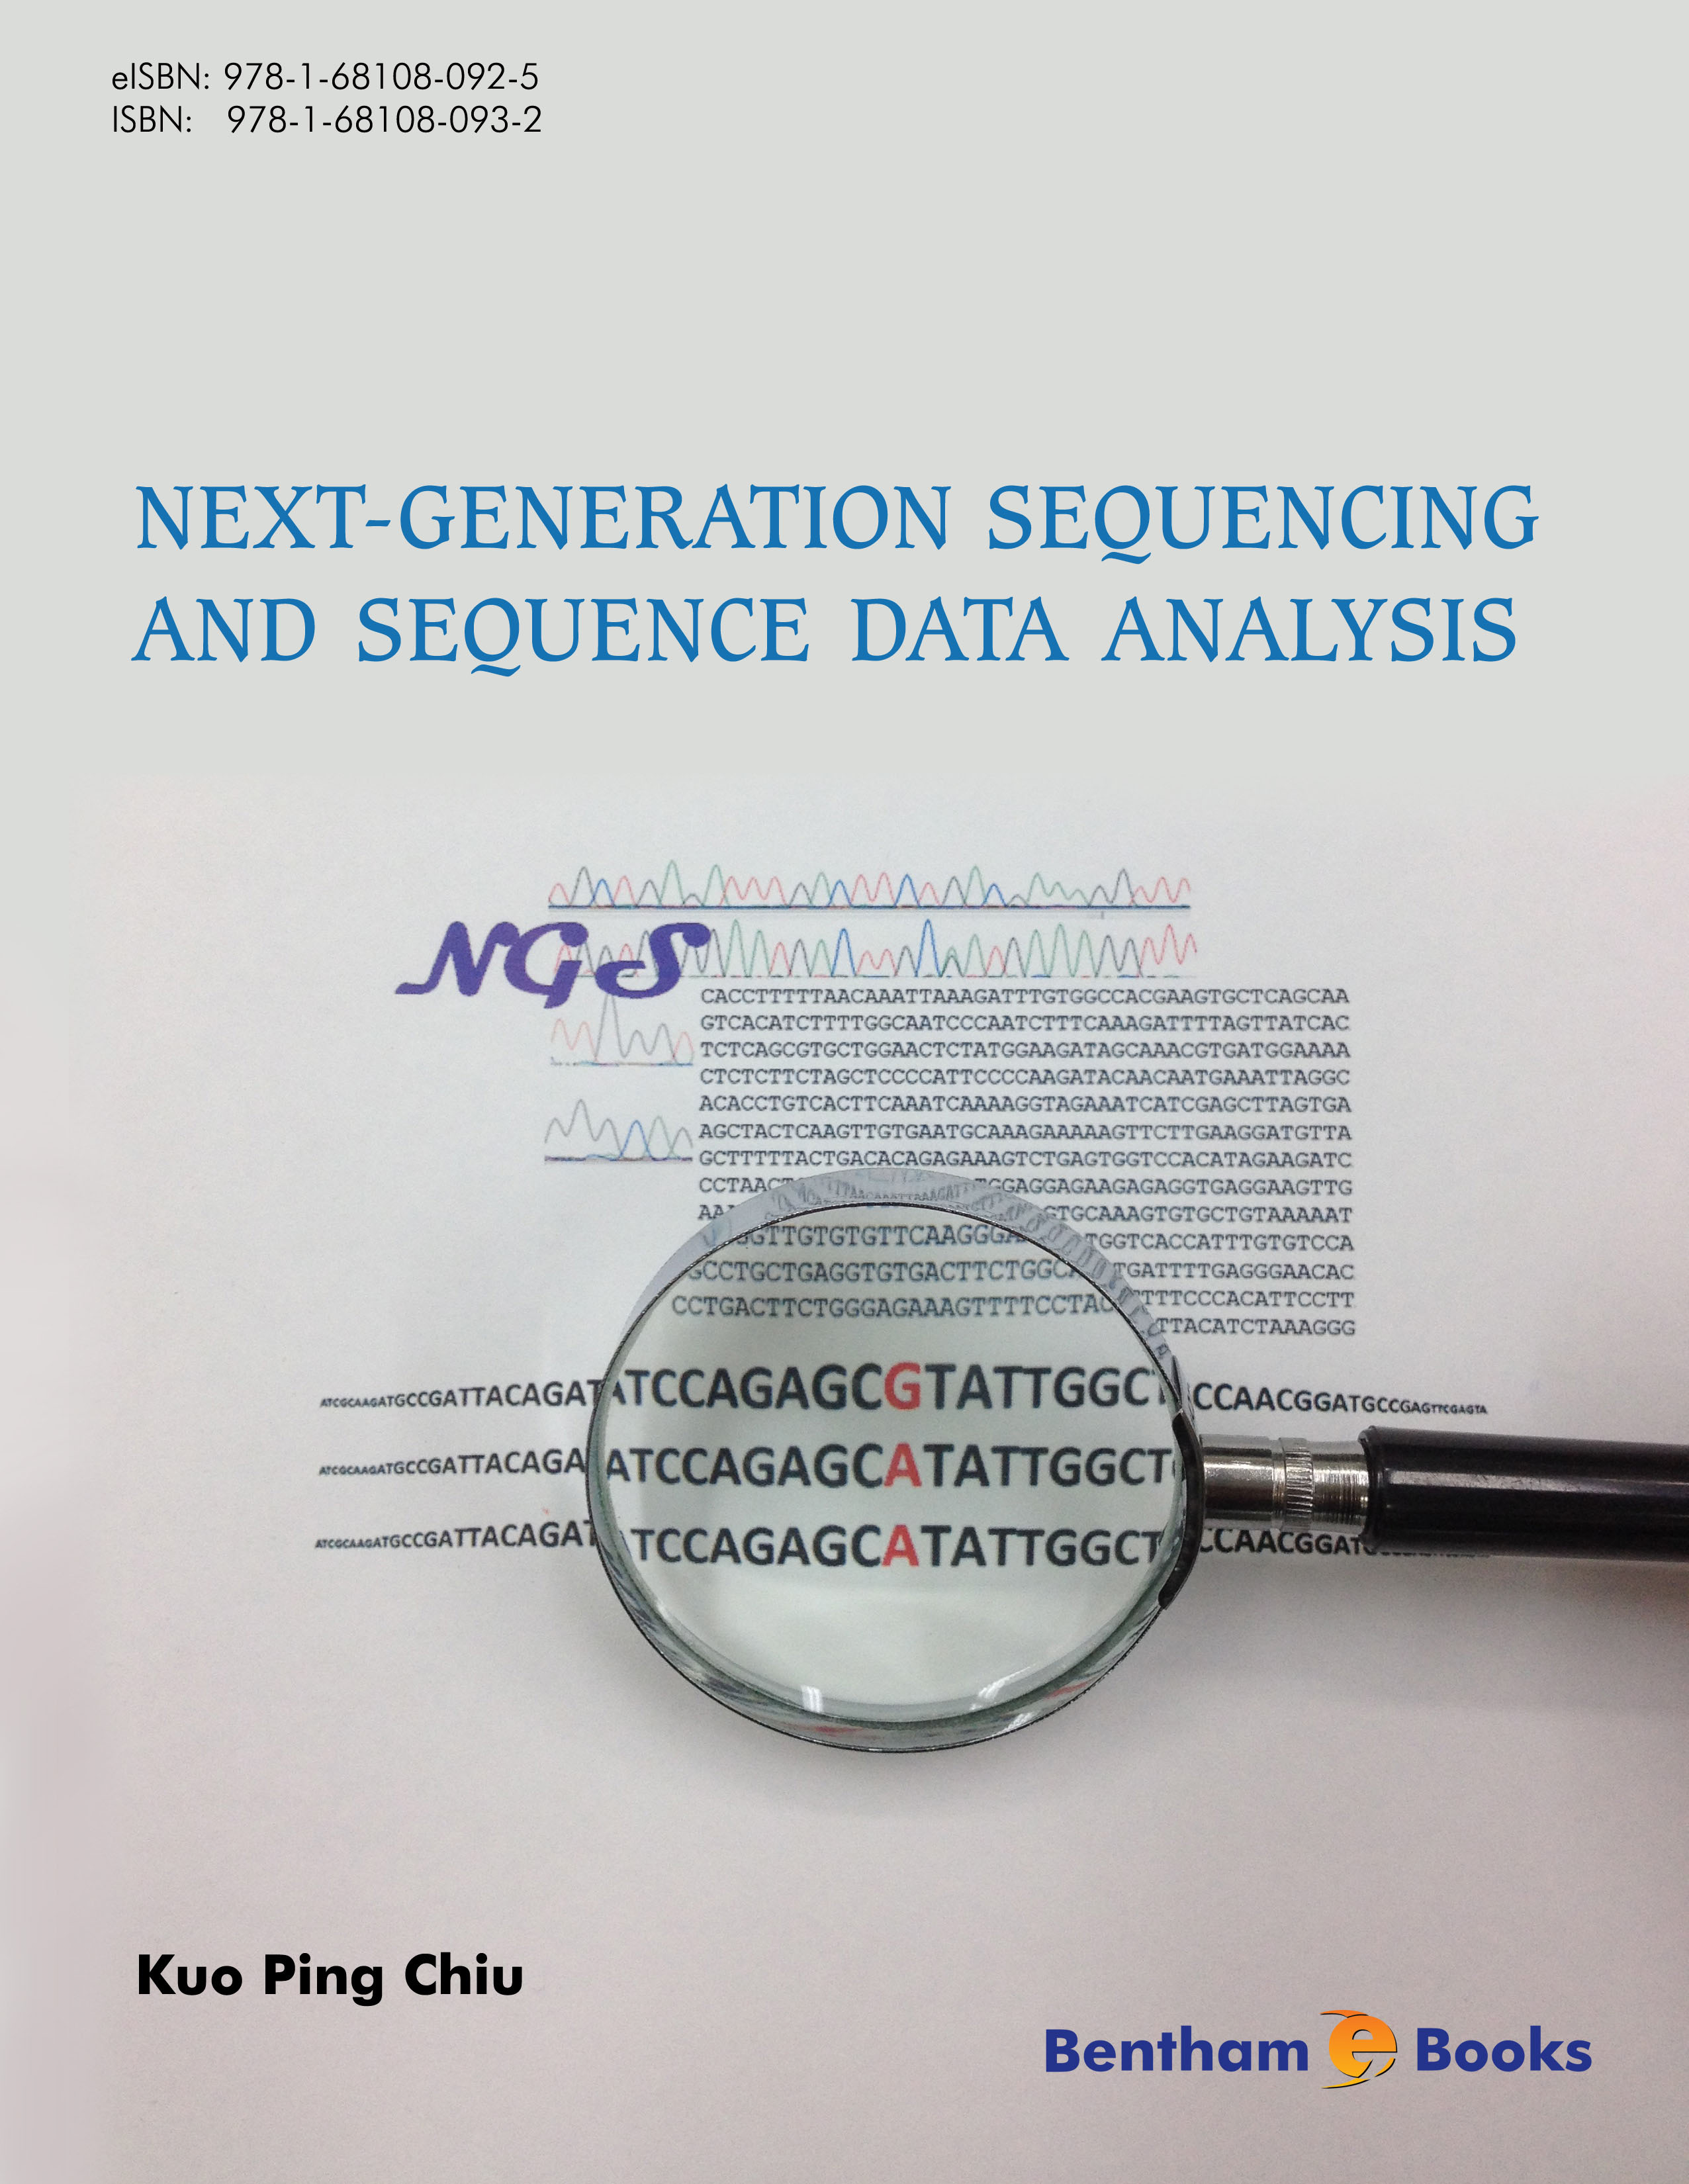 Next-Generation Sequencing and Sequence Data Analysis